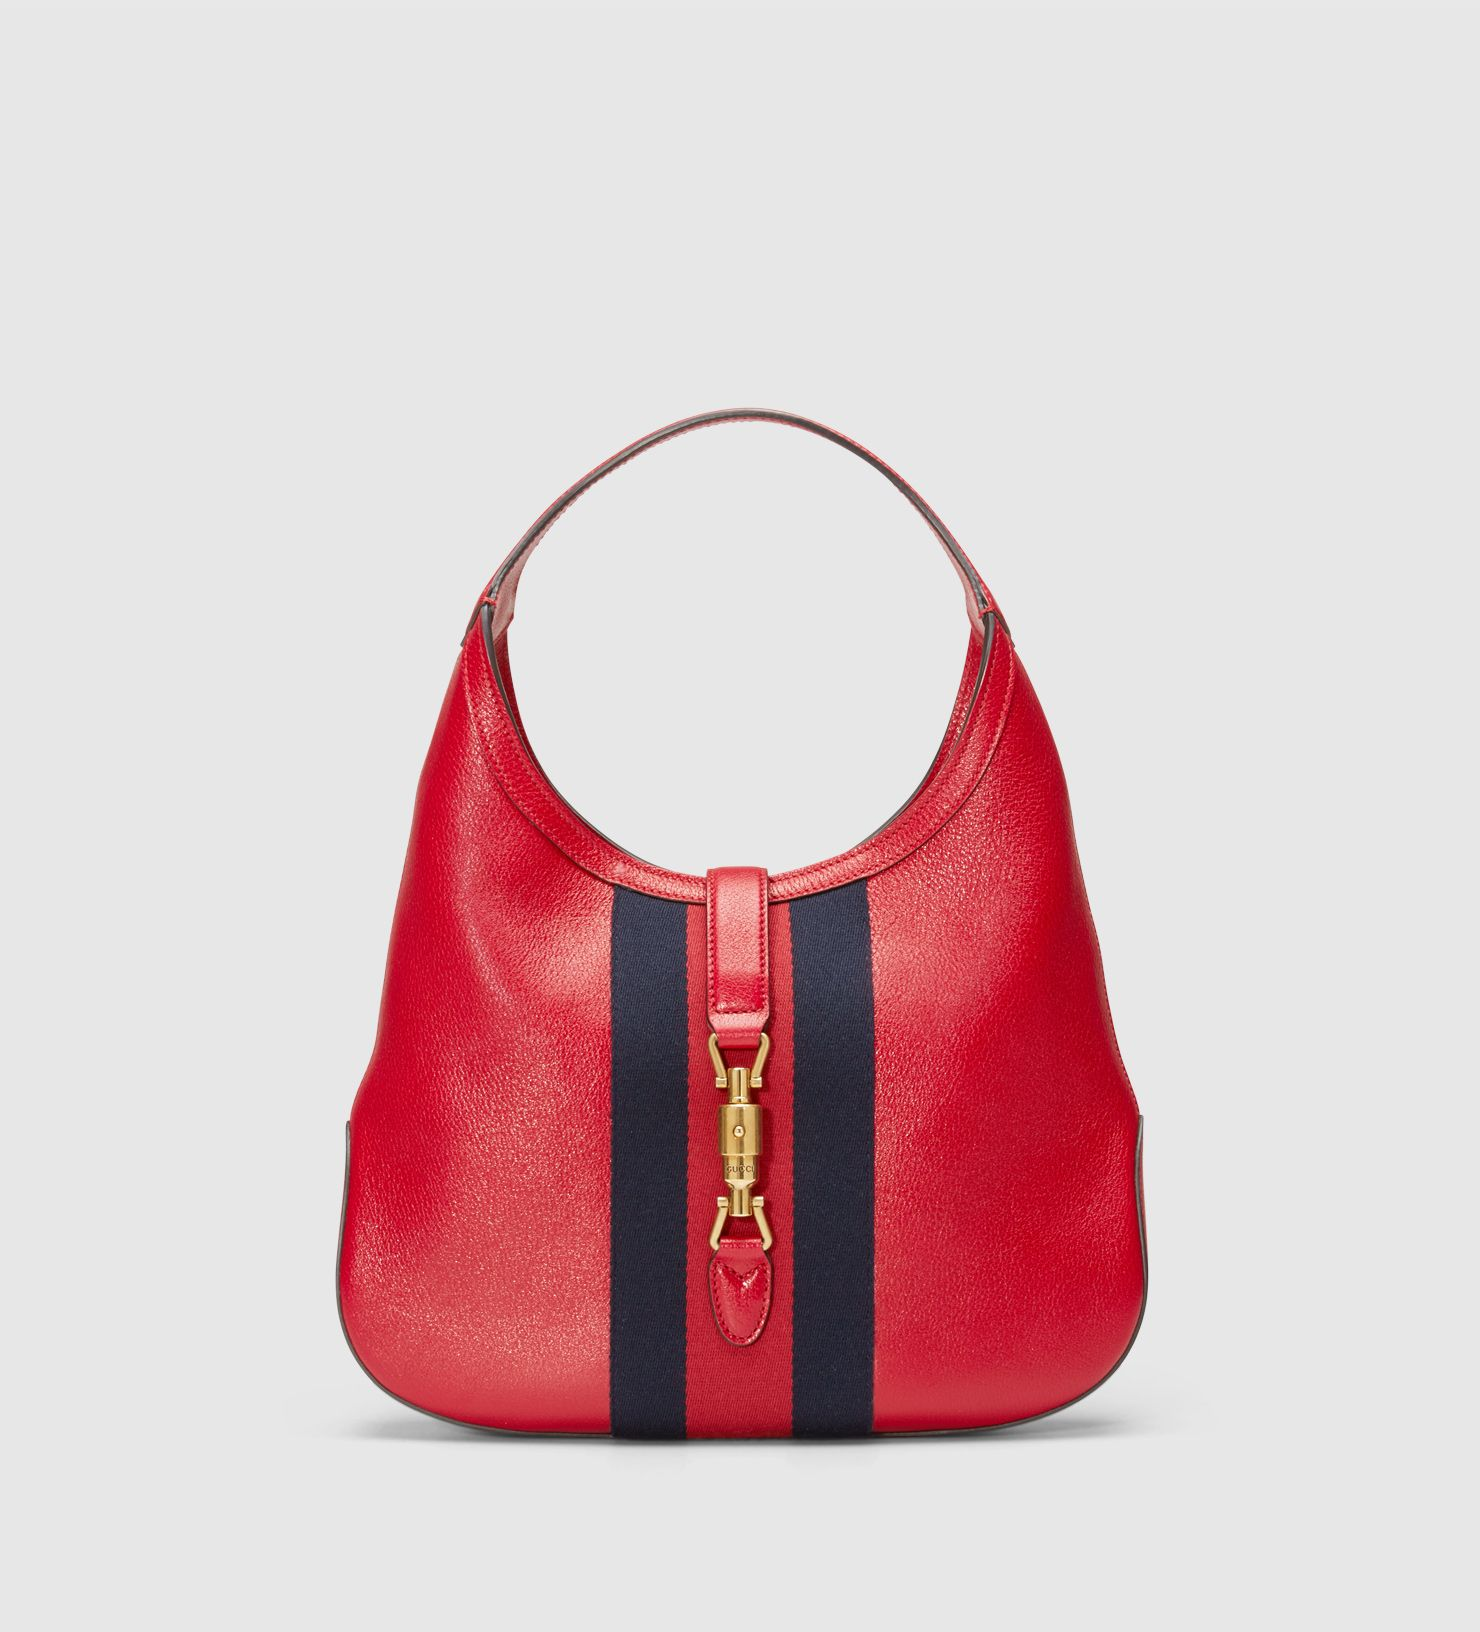 Jackie Soft Leather Hobo 365458cwg1t6473 Gucci Handbags Gucci Uk Leather Hobo